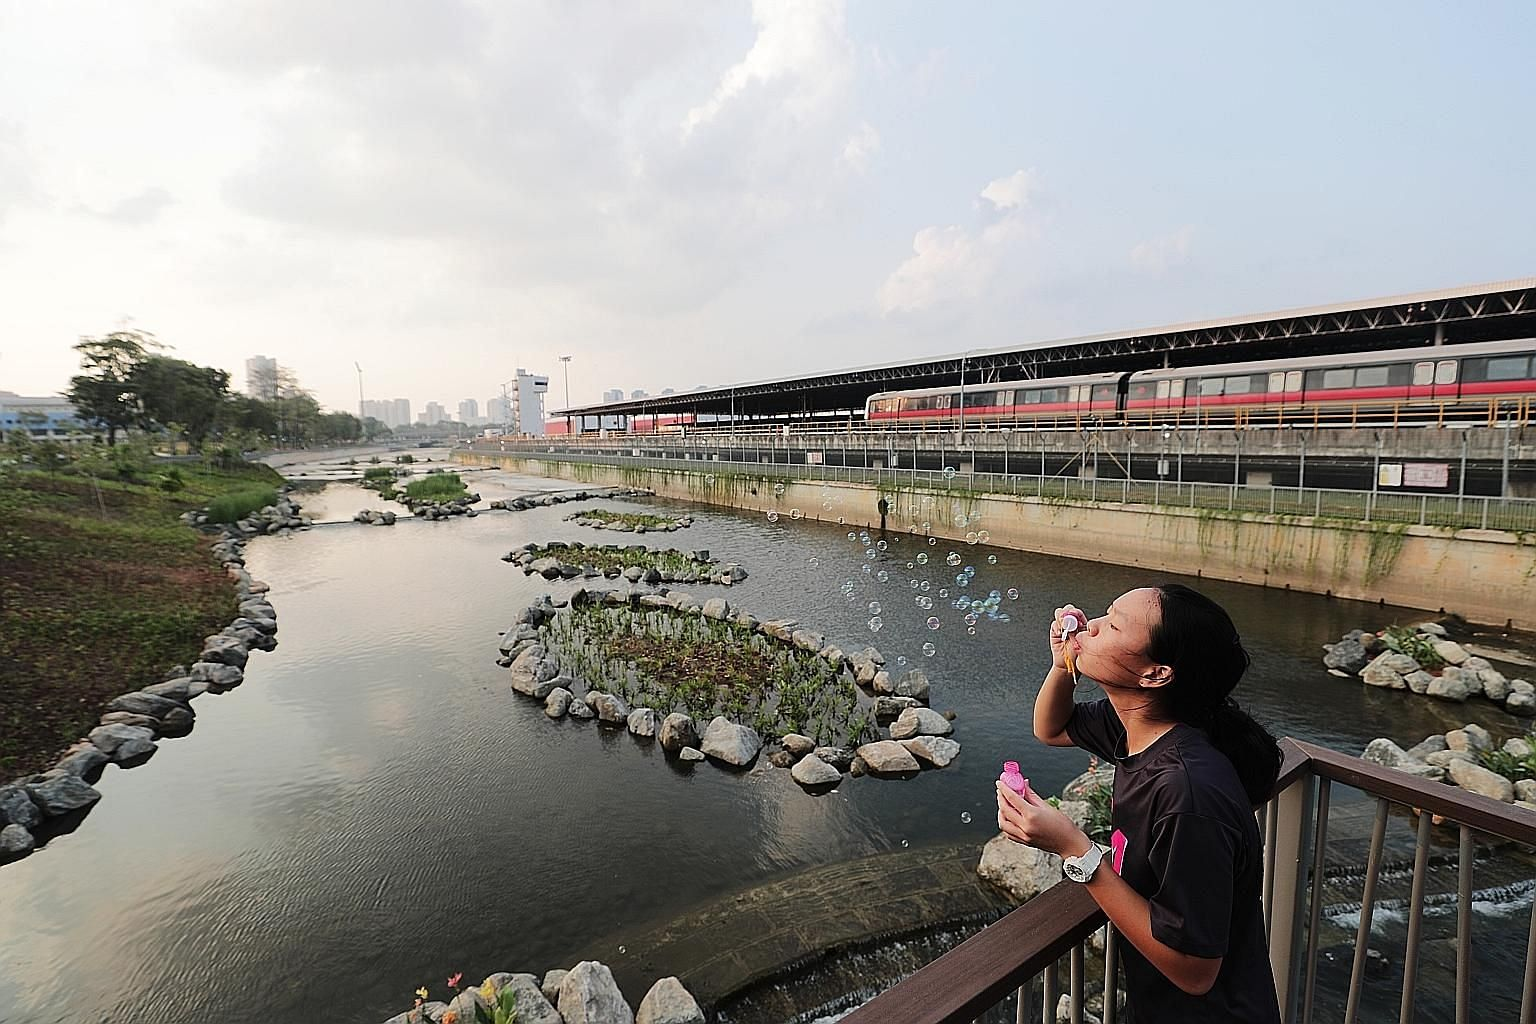 Bishan resident Sharon Quek, 14, having fun at the upgraded stretch of the Kallang River yesterday. Features to beautify the area include a naturalised slope, small islands with plants, and water cascades that help the water to flow from a higher ele